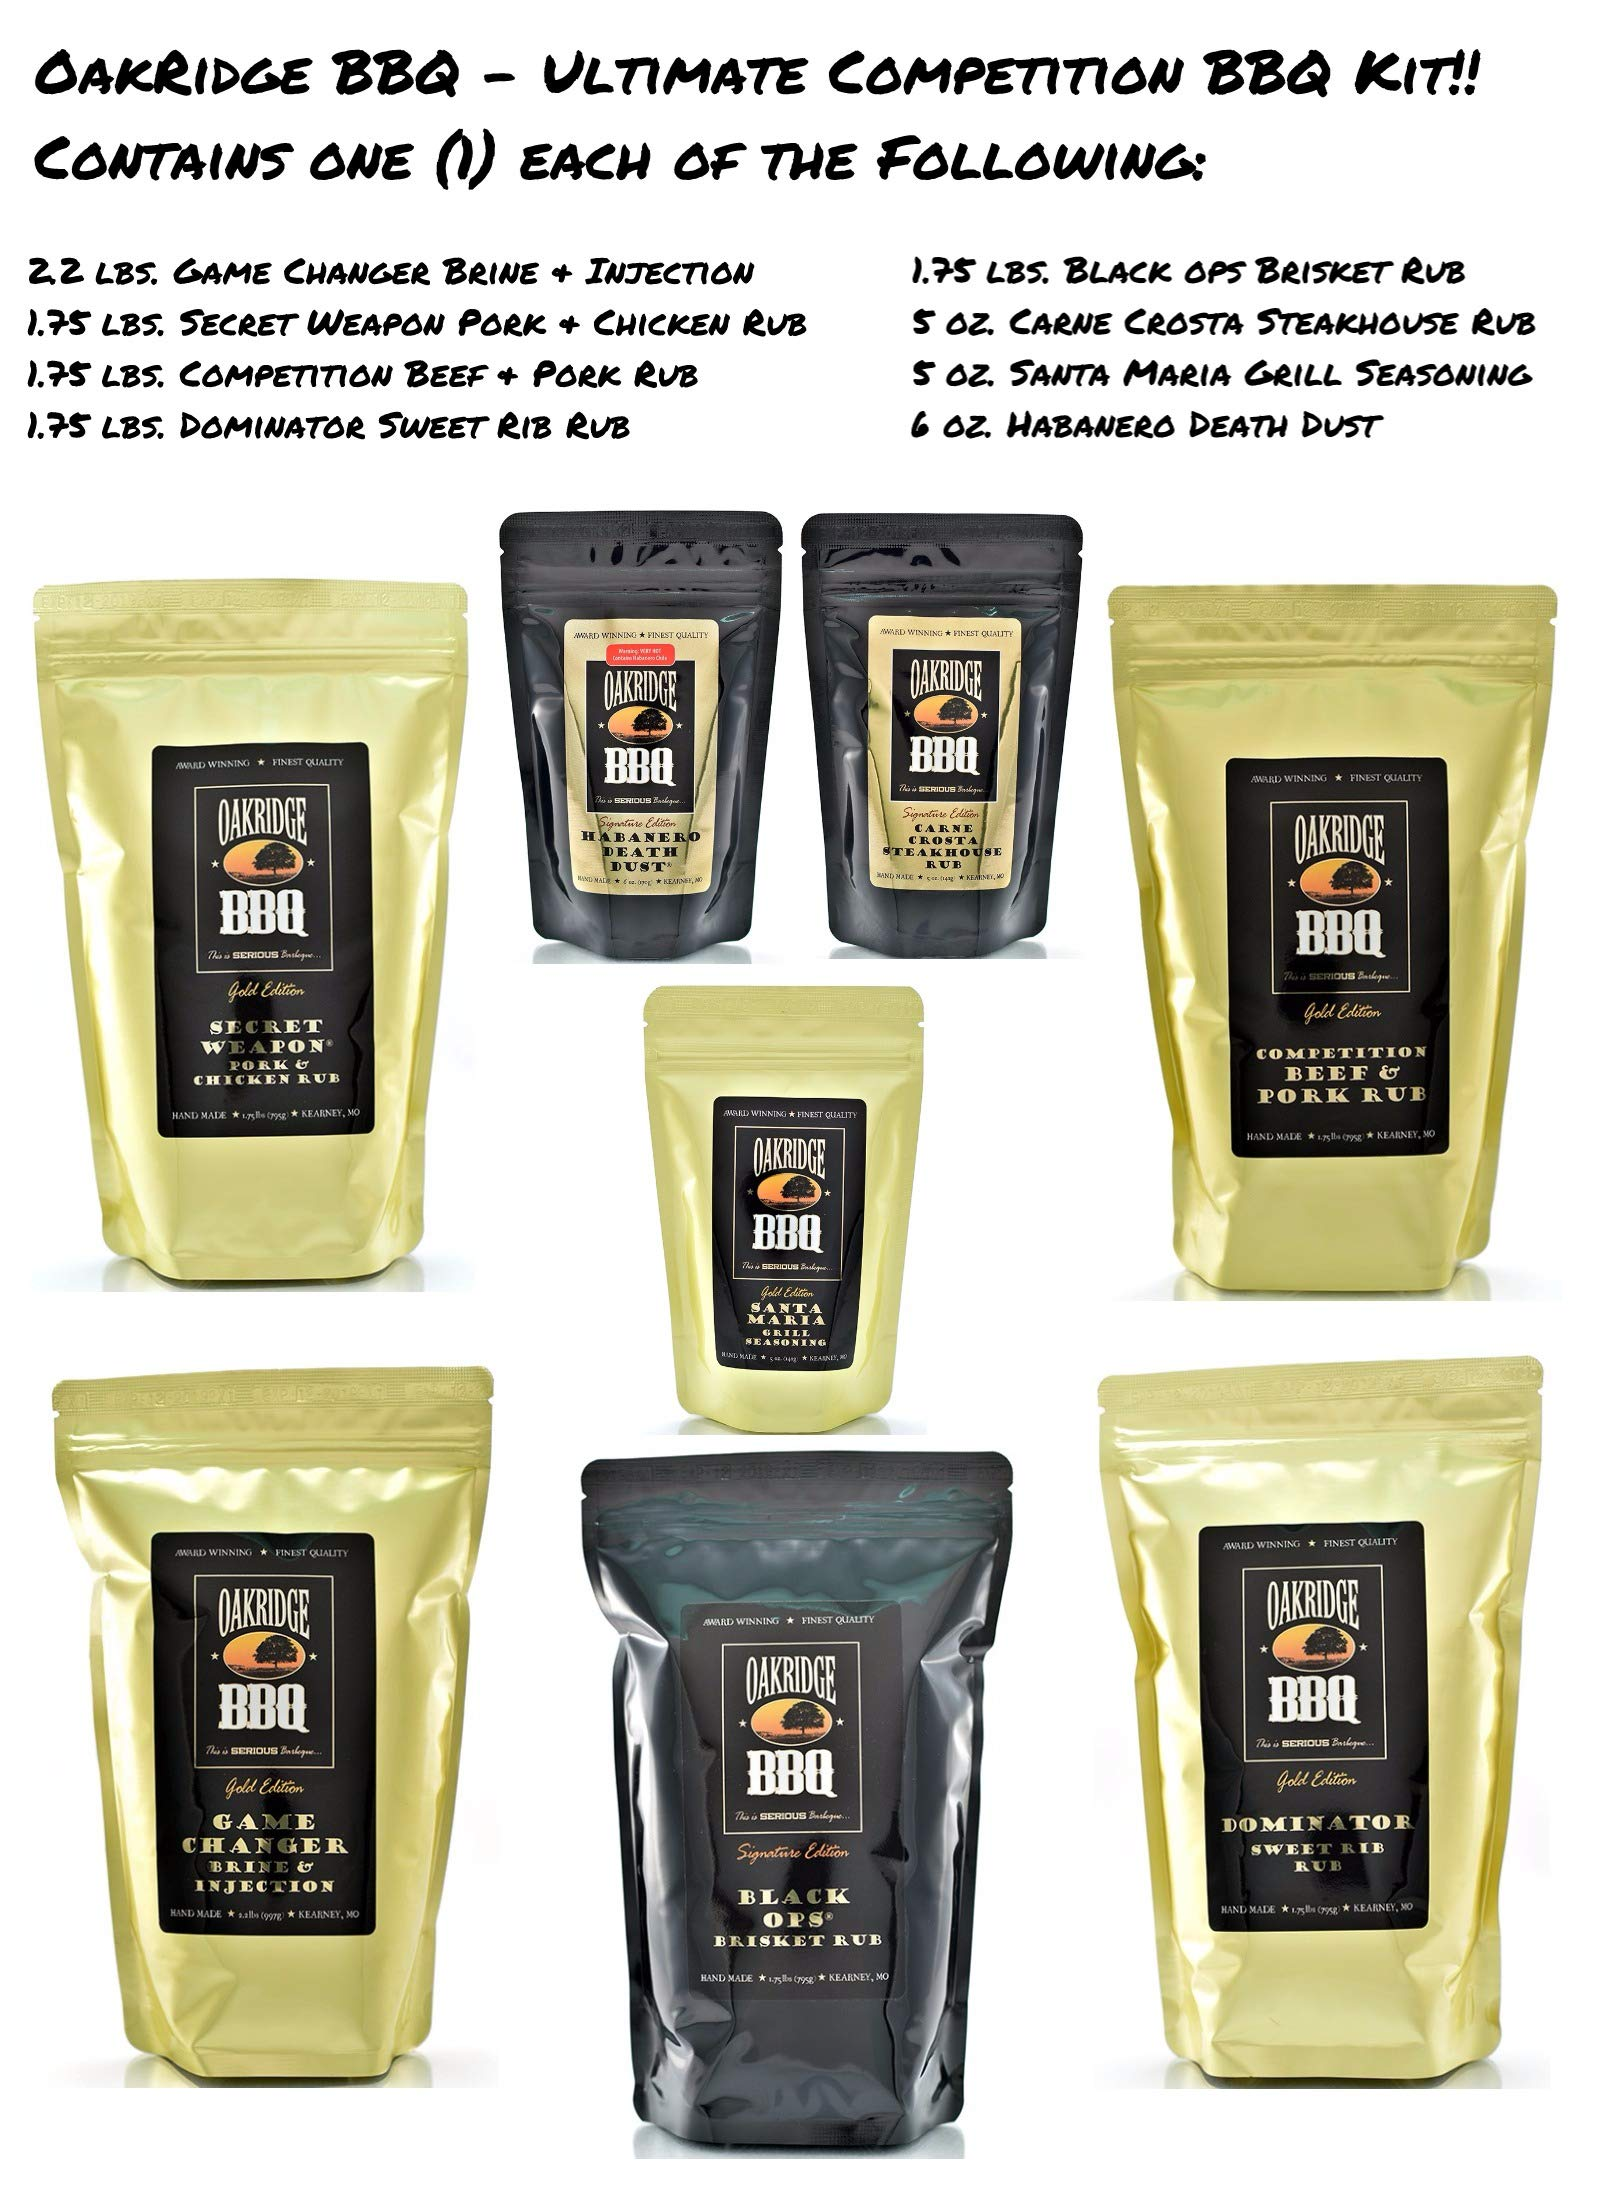 Oakridge BBQ The Ultimate Back Yard BarBQ Kit - Contains Eight (8) of the Most Popular Barbeque Rubs and Seasonings by Oakridge BBQ (Image #1)